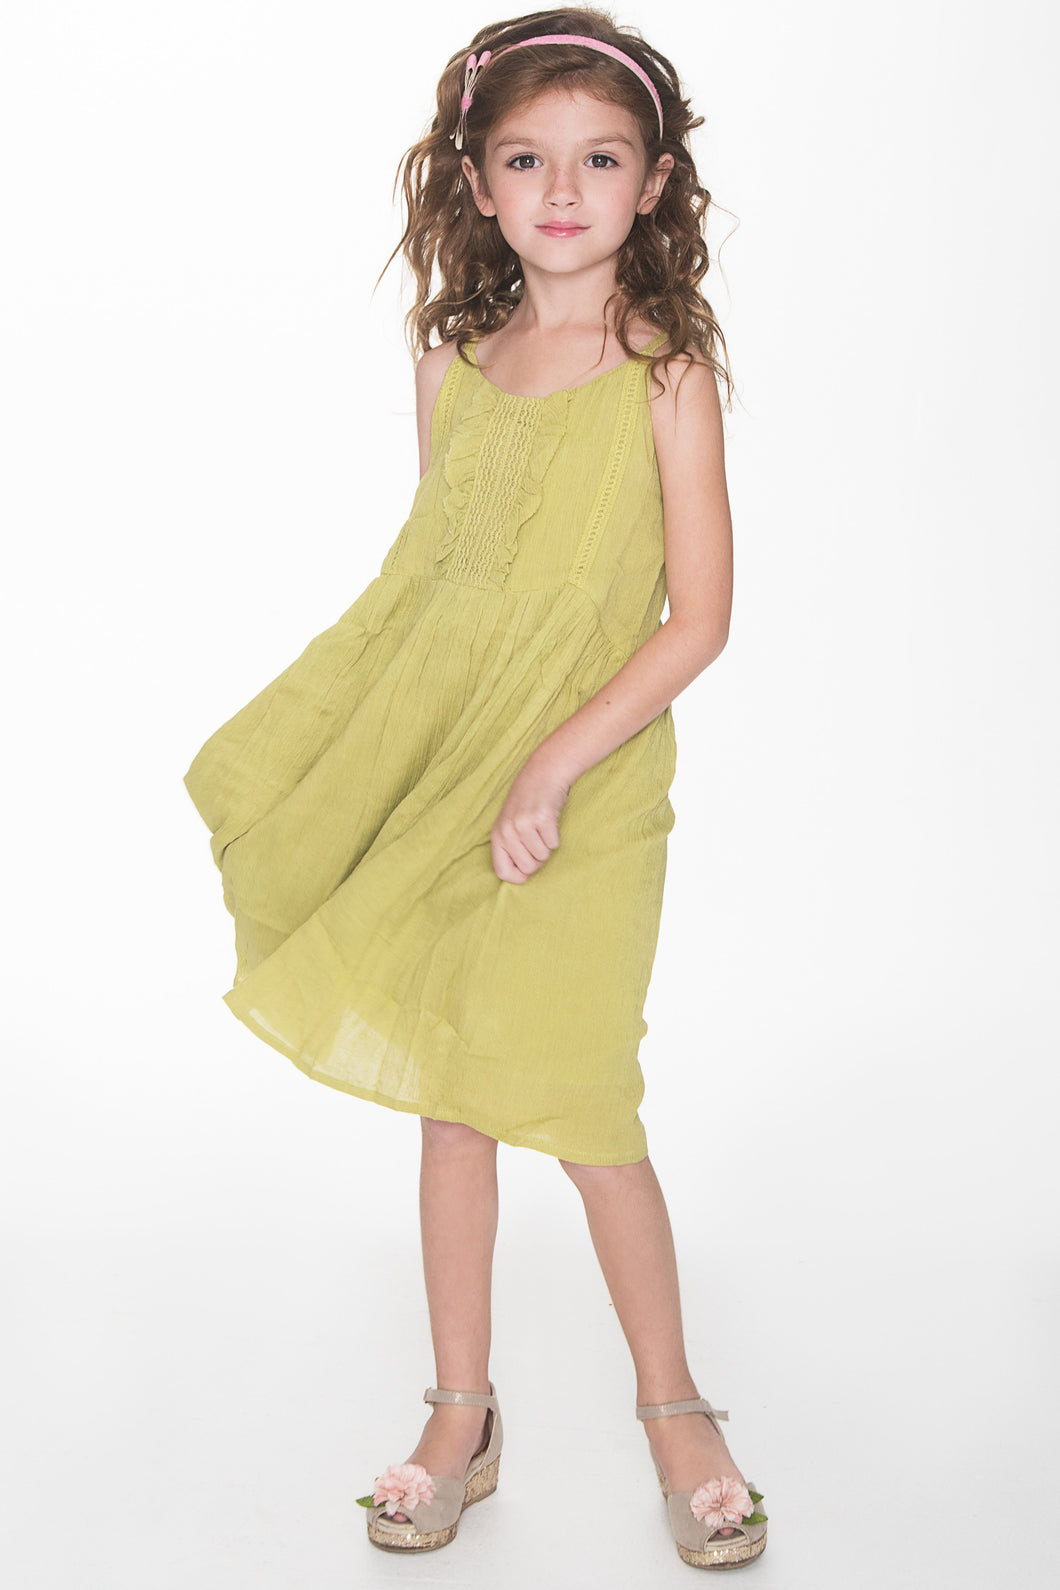 Green Swing Dress - Kids Clothing, Dress - Girls Dress, Yo Baby Online - Yo Baby